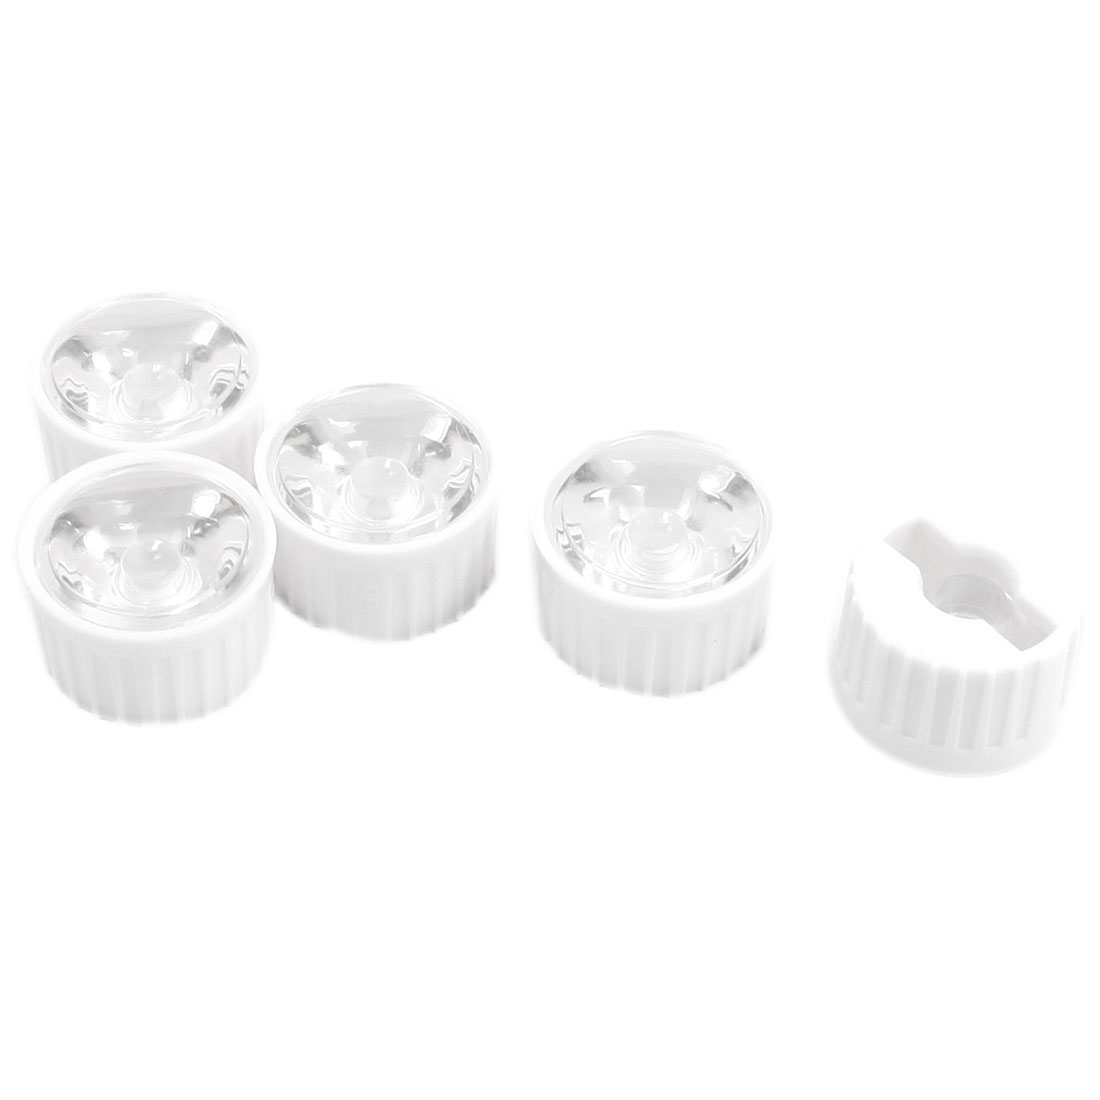 5pcs 22x13mm PMMA High Power LED Optical Lens 50 Degree Viewing Angle